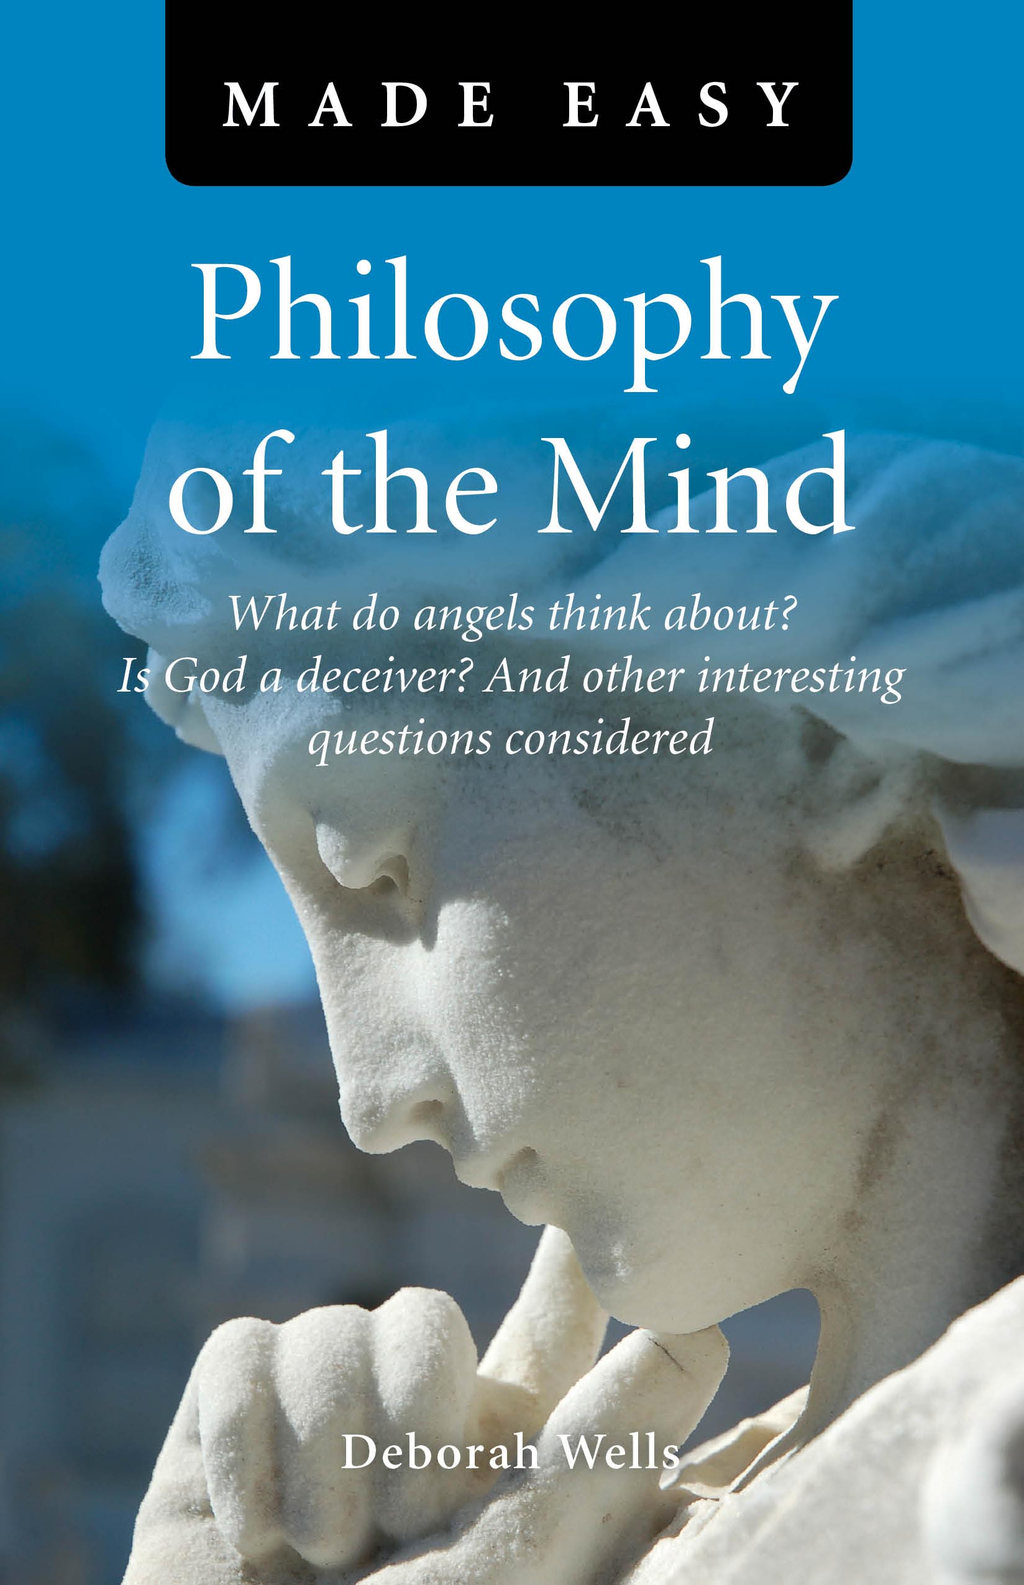 Philosophy of the Mind Made Easy: What do angels think about? Is God a deceiver? And other interesting questions considered By: Deborah Wells